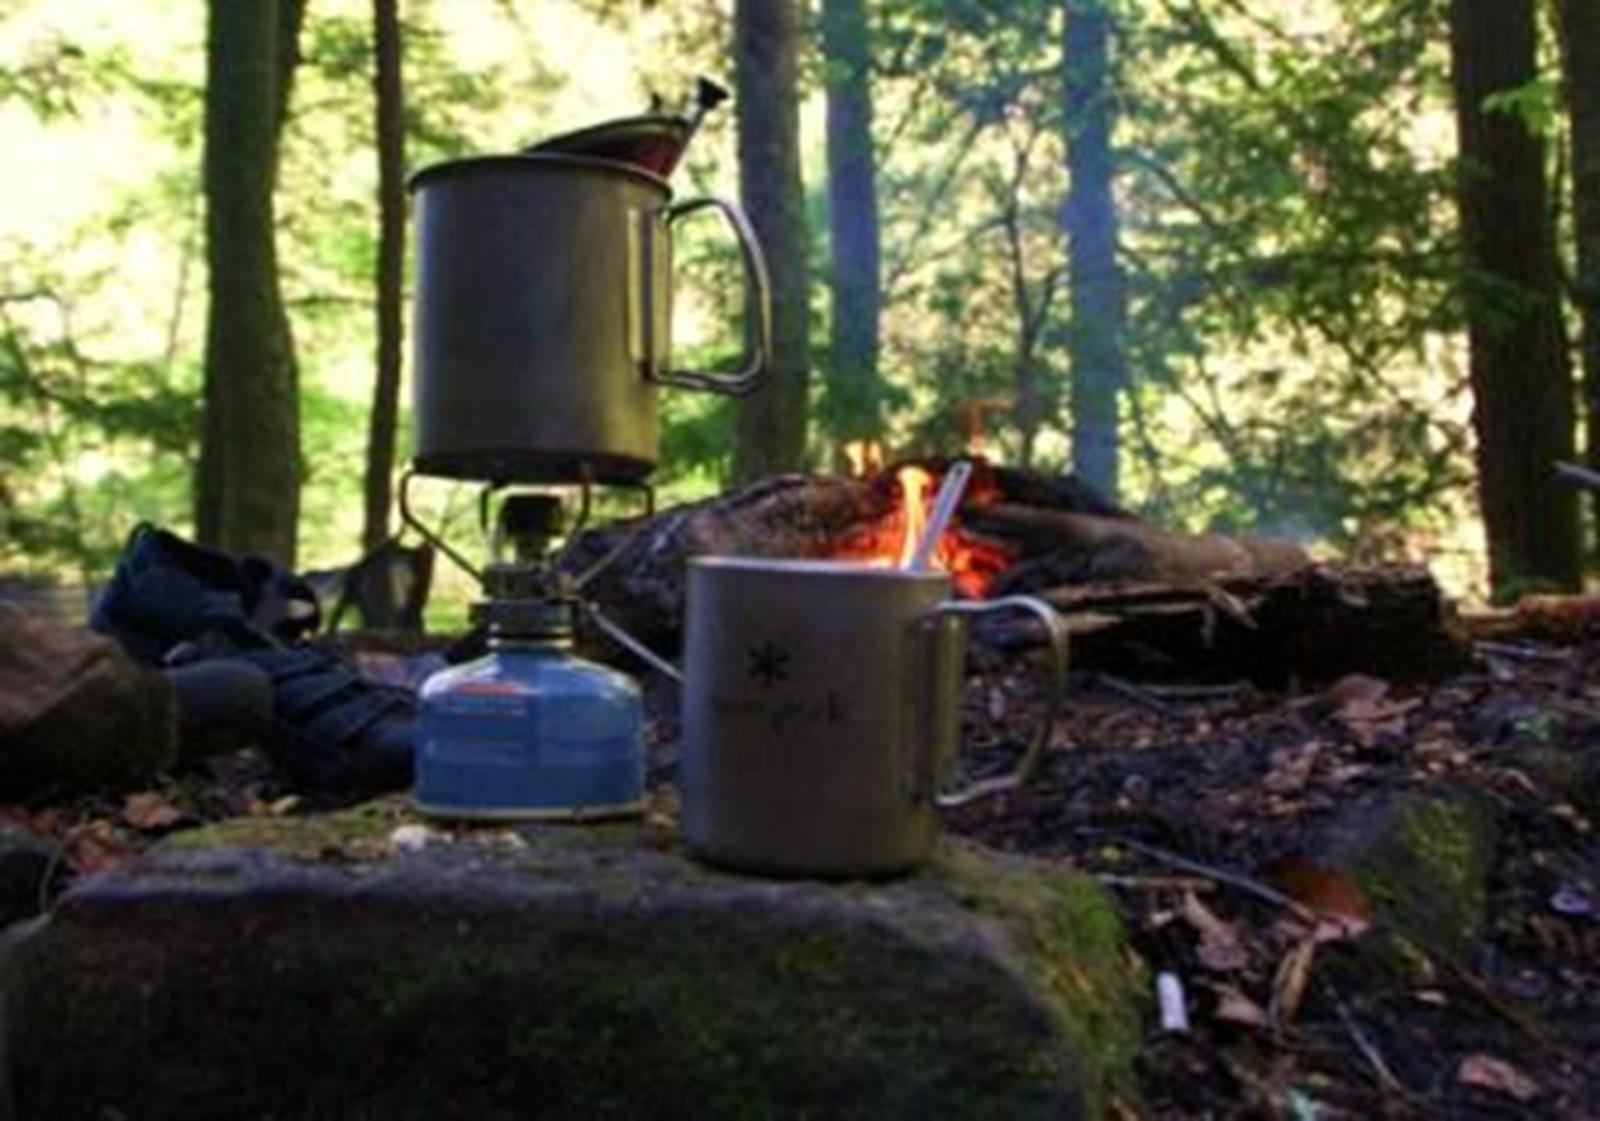 Camp cooking. Credit: Alabama Eco Adventures